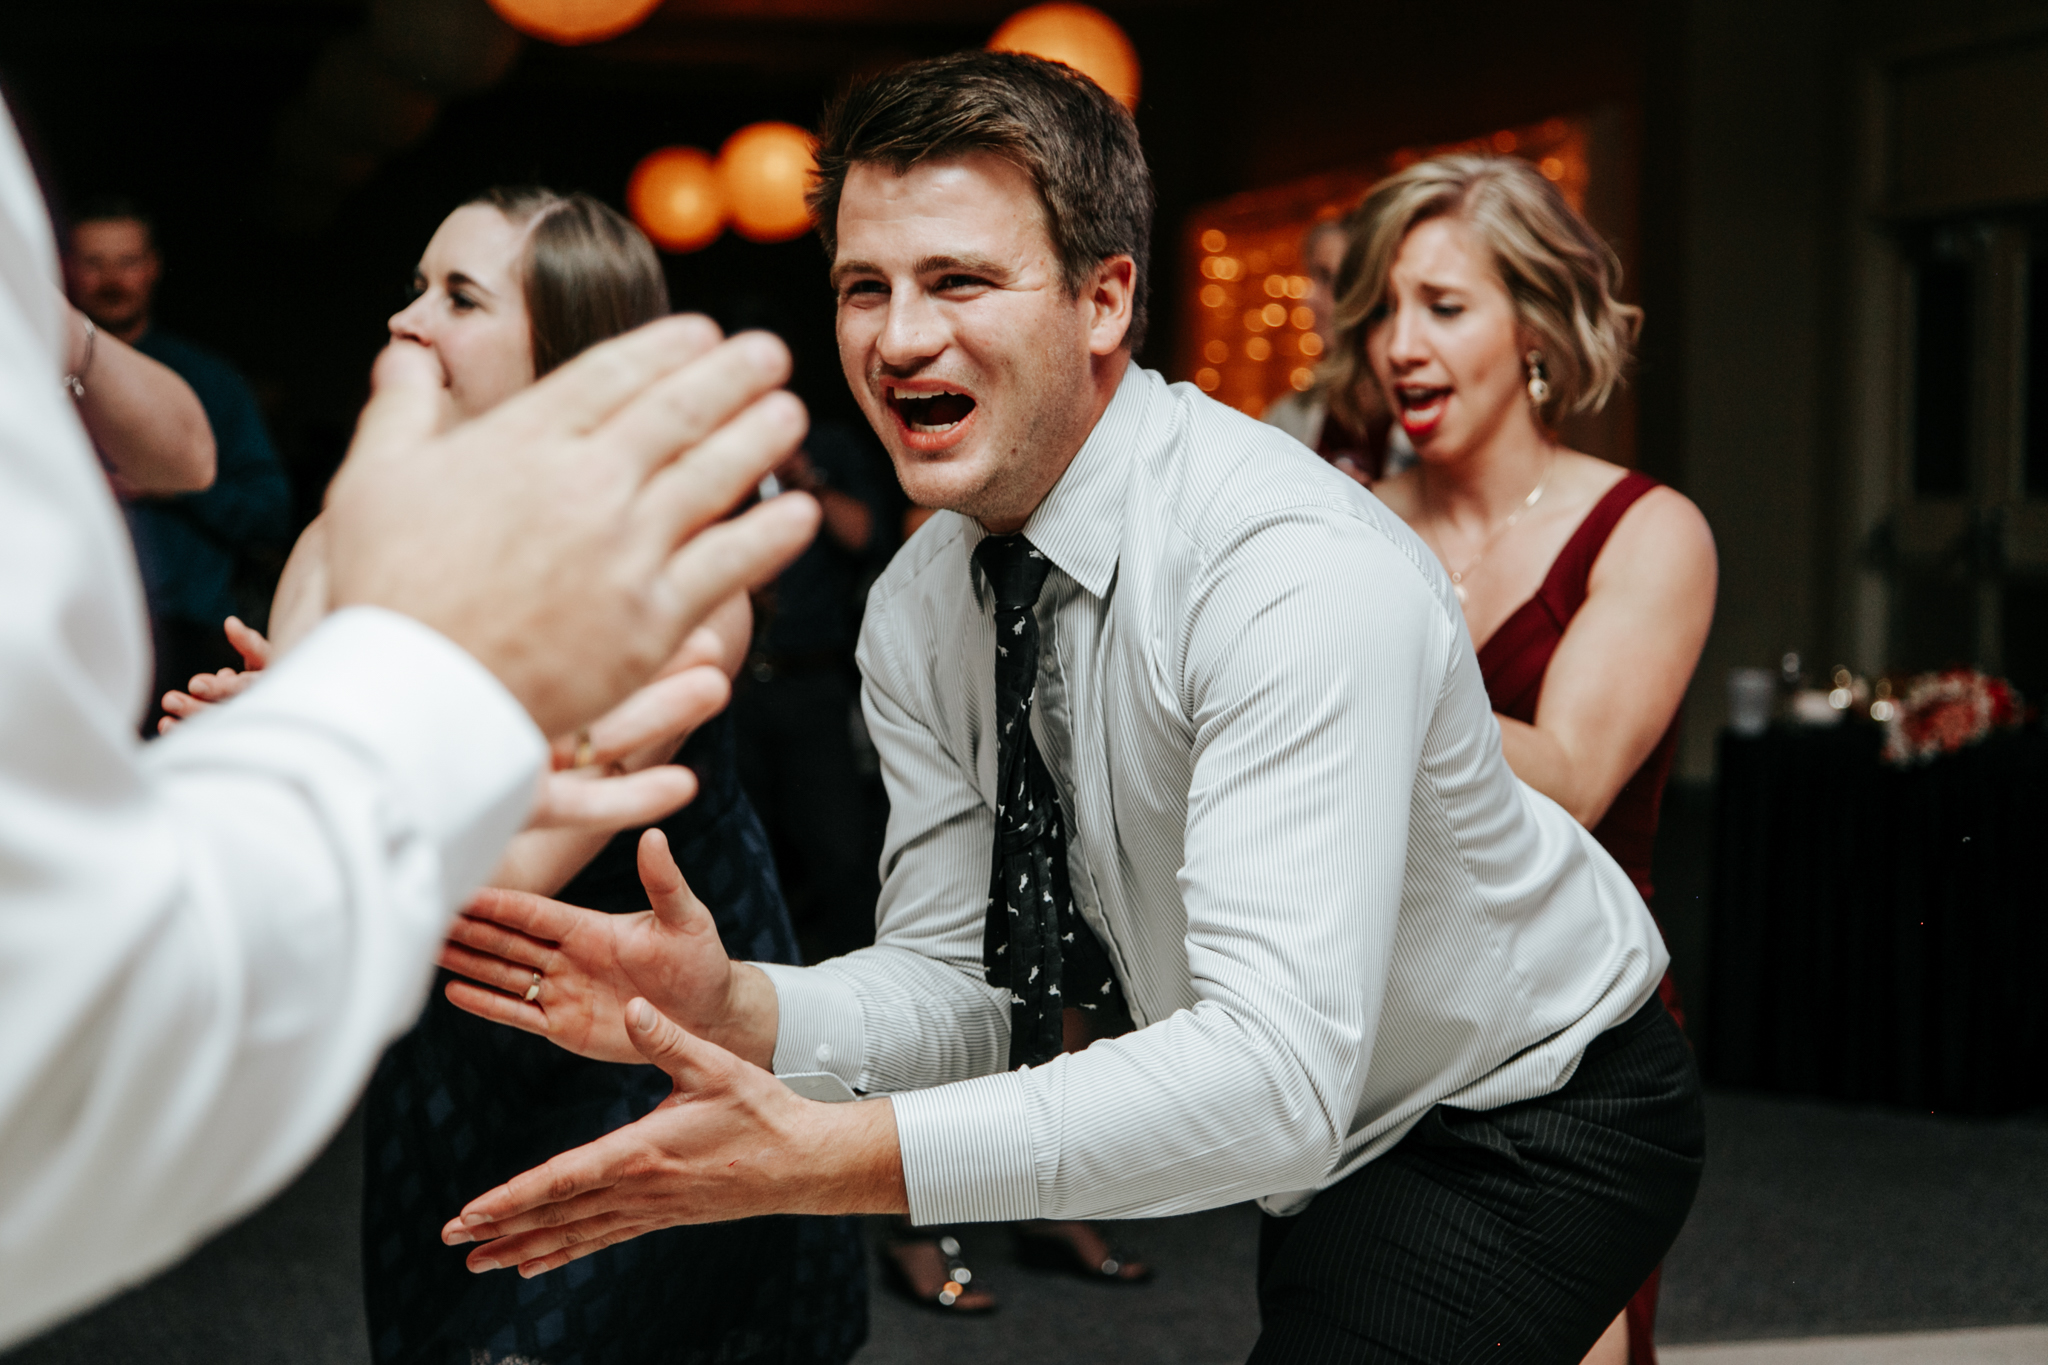 lethbridge-photographer-love-and-be-loved-photography-rocky-mountain-turf-club-reception-katie-kelli-wedding-picture-image-photo-435.jpg